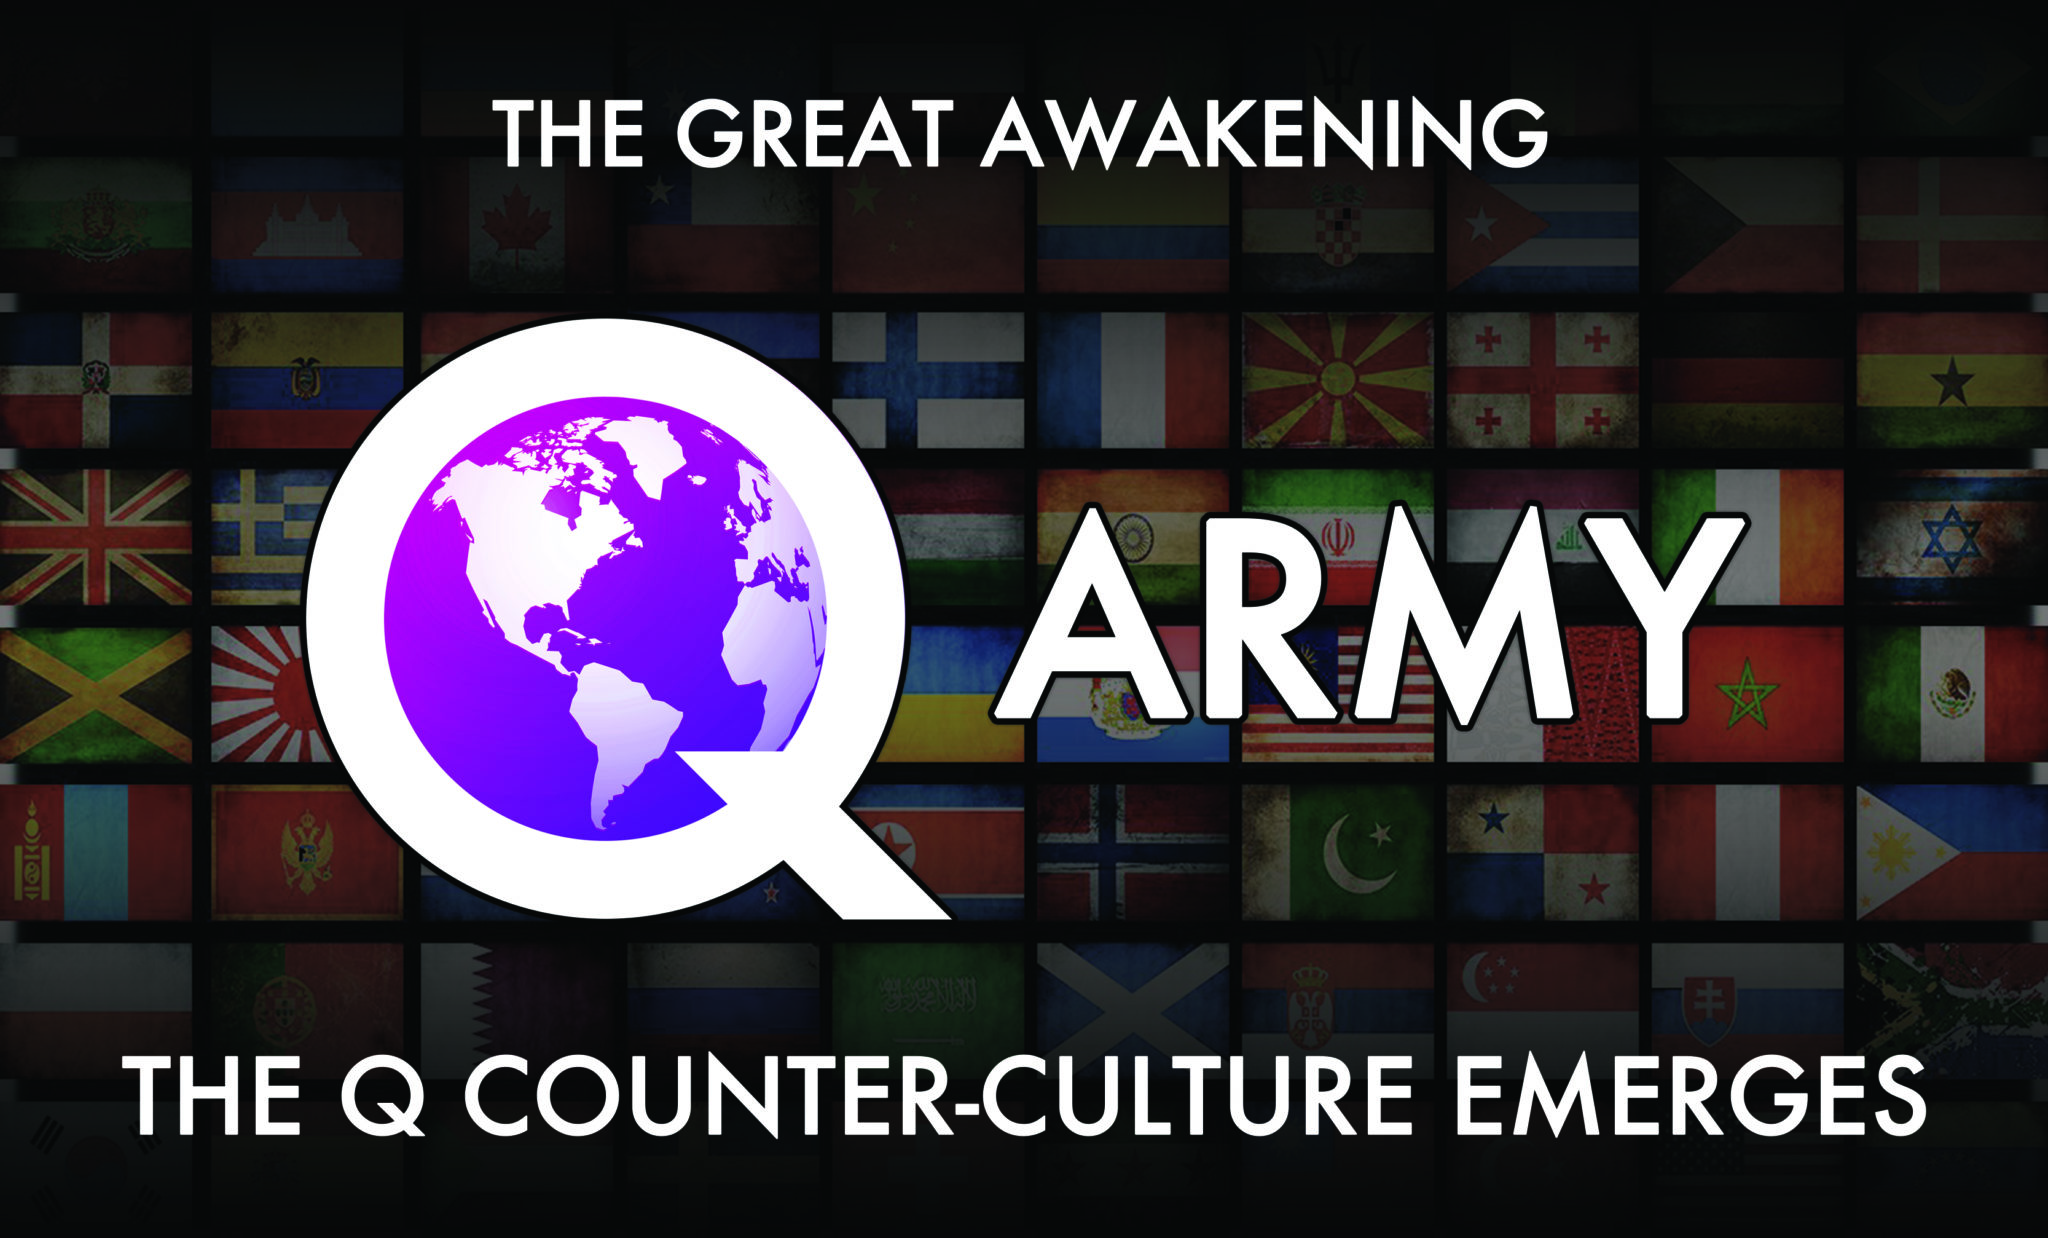 The-Great-Awakening-Just-Went-into-a-More-Active-Phase-Q-Army-Counter-Culture-ACTIVATED-Q-Drop-22Best-documentary-of-the-year.22--2048x1238